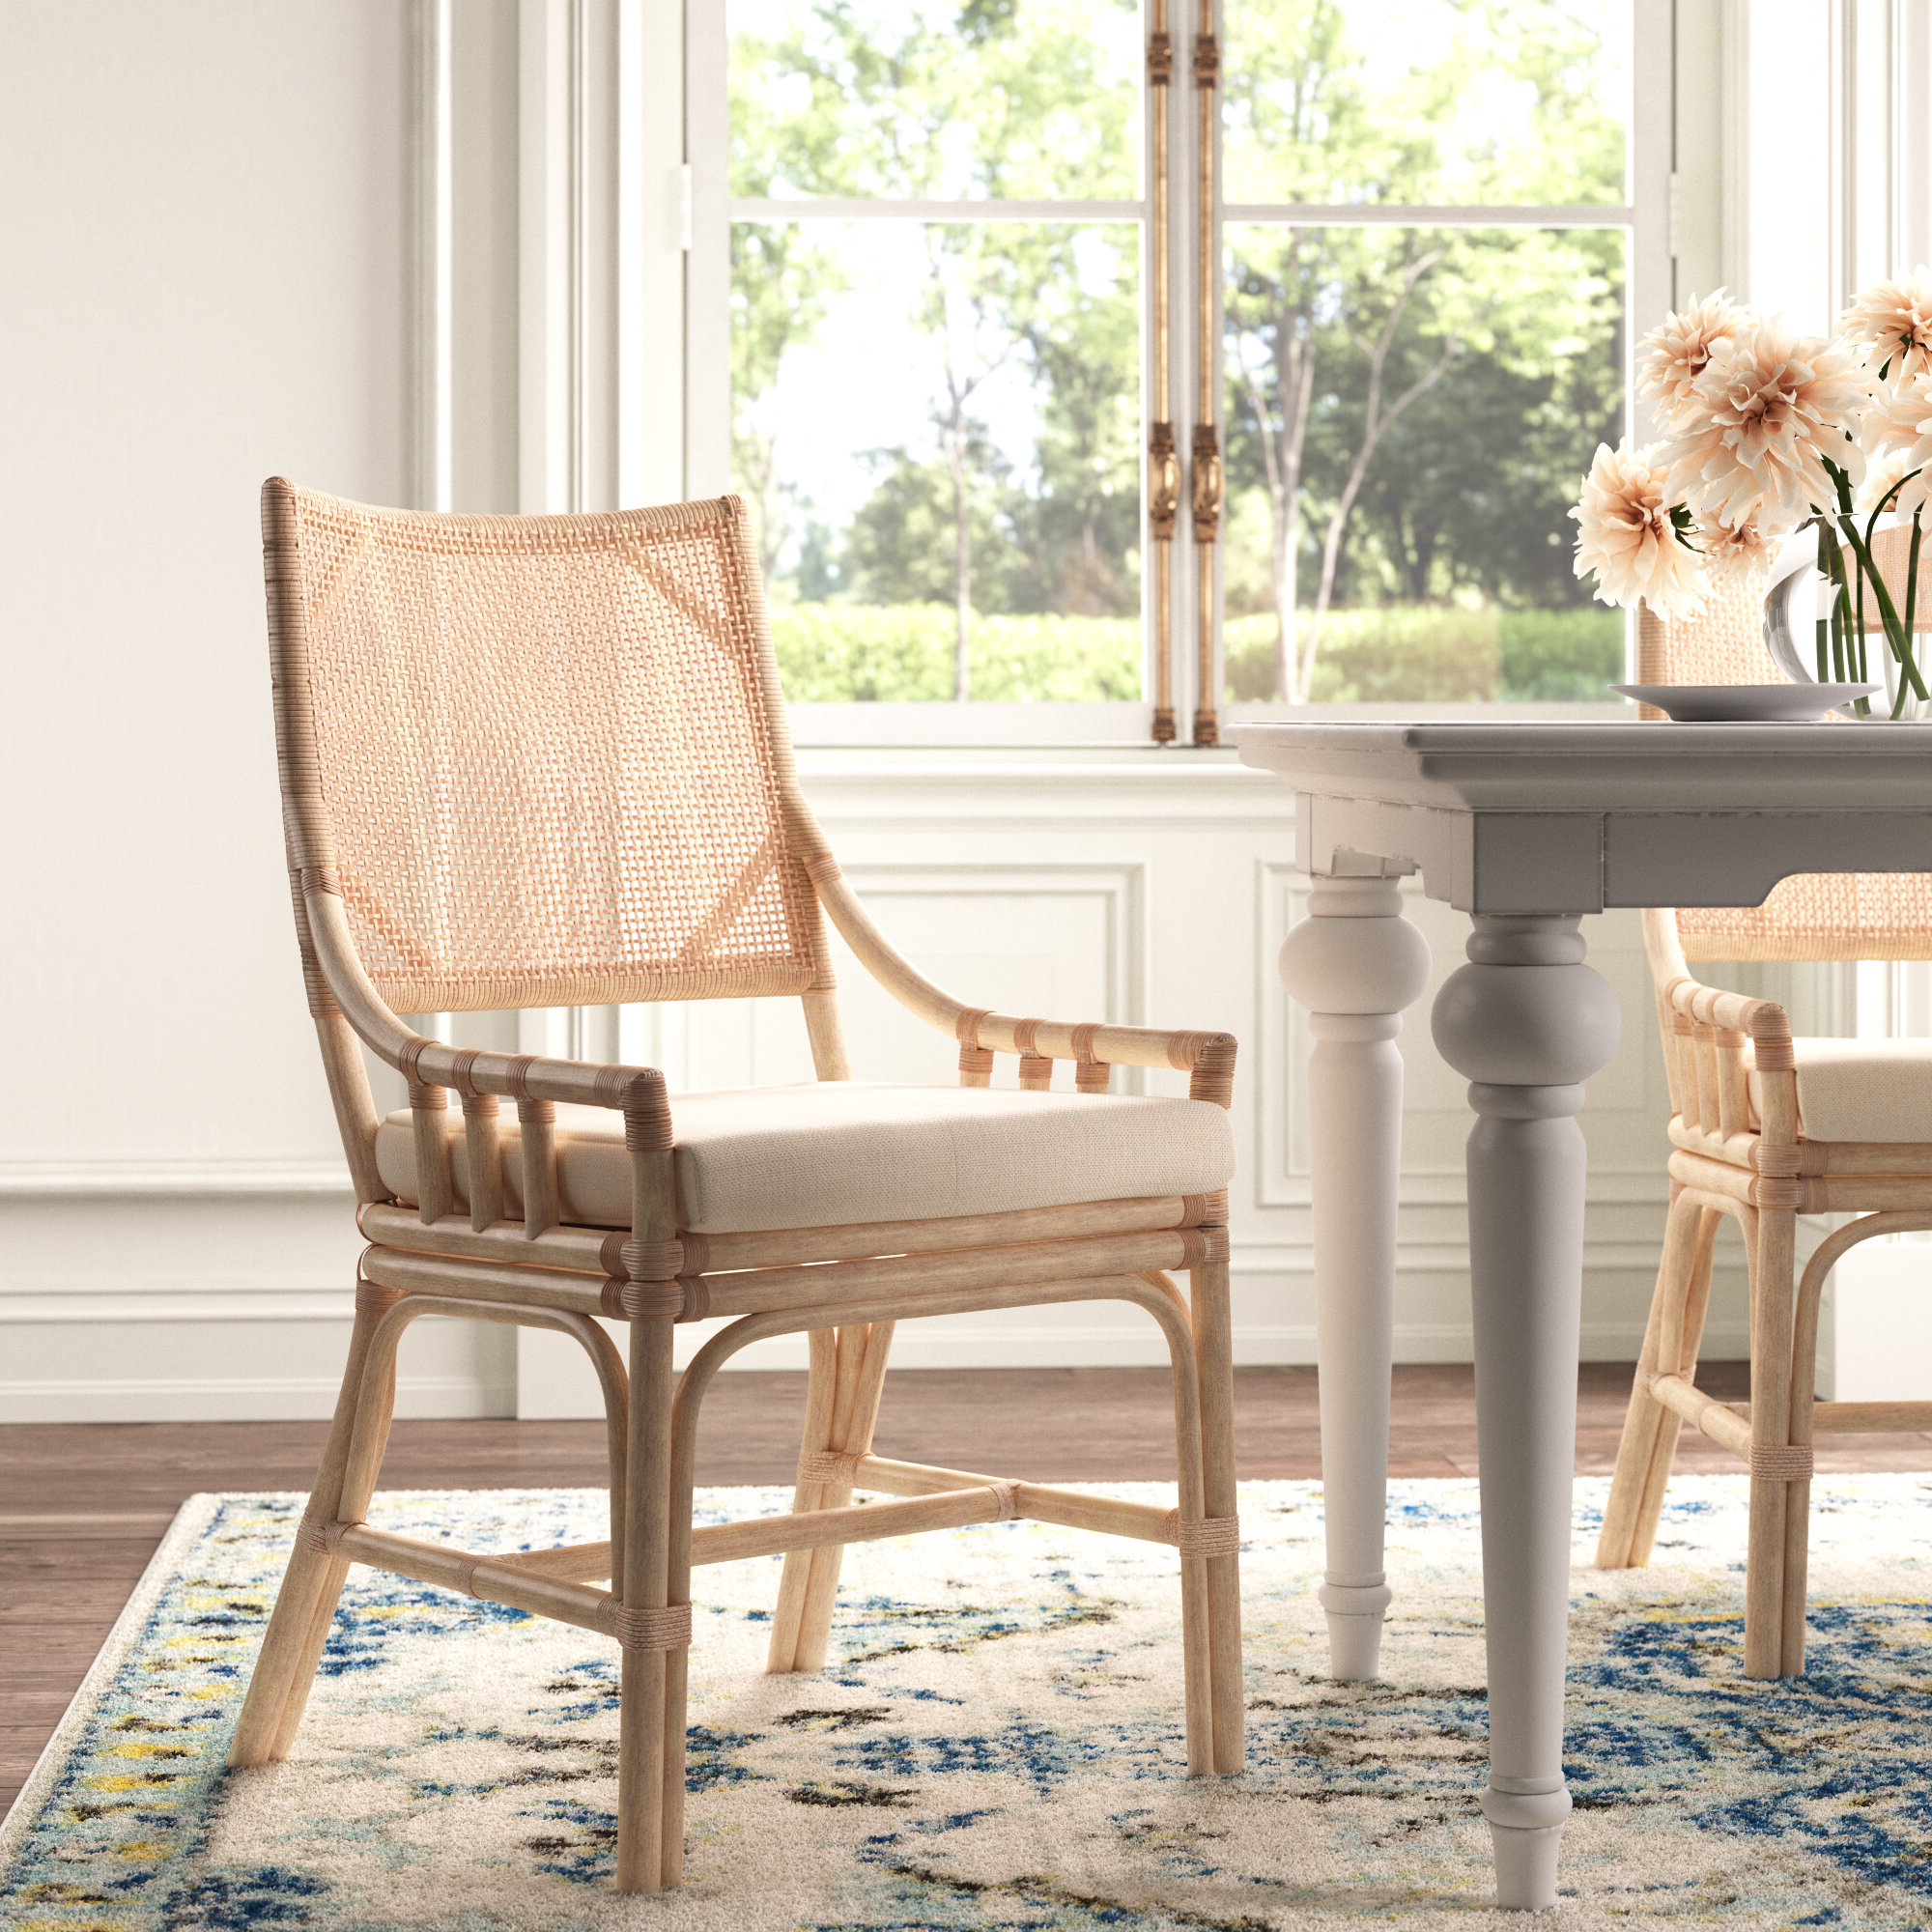 Kelly Clarkson Home Desk Chairs You'll Love In (View 16 of 20)